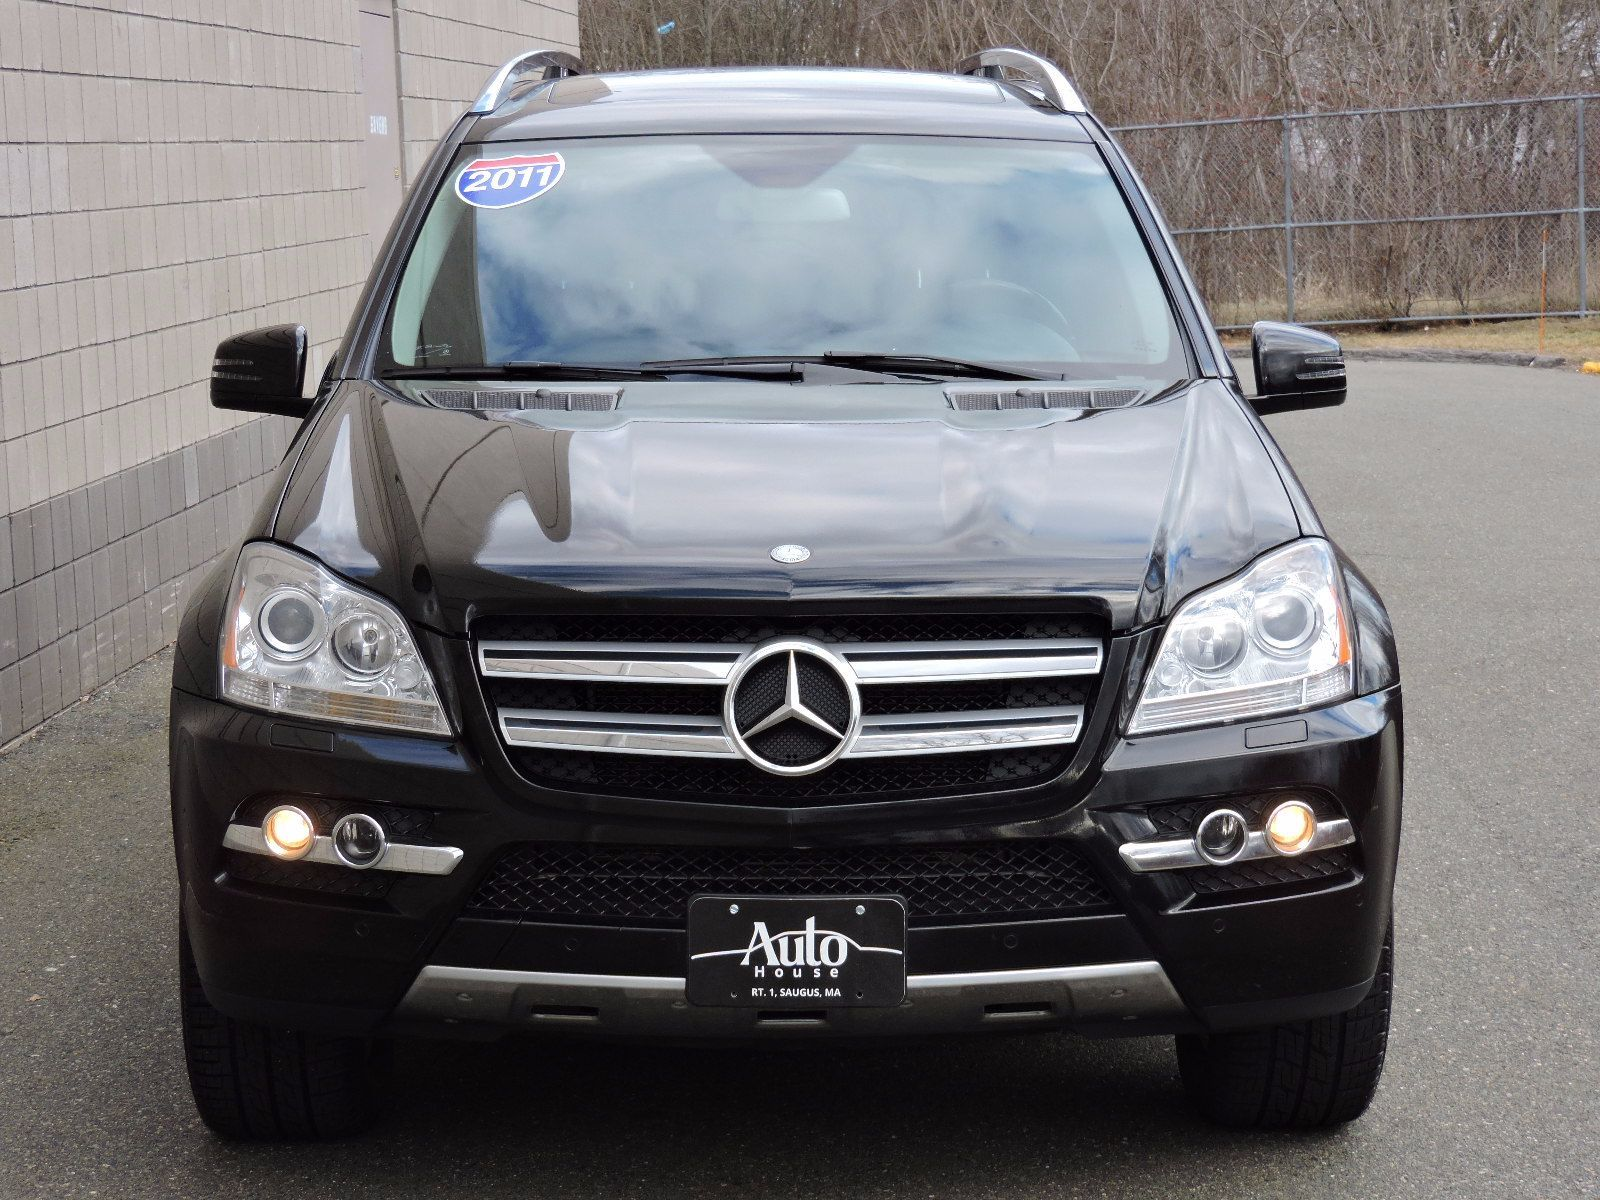 Used 2011 mercedes benz gl450 ltz at saugus auto mall for Used mercedes benz gl450 4matic